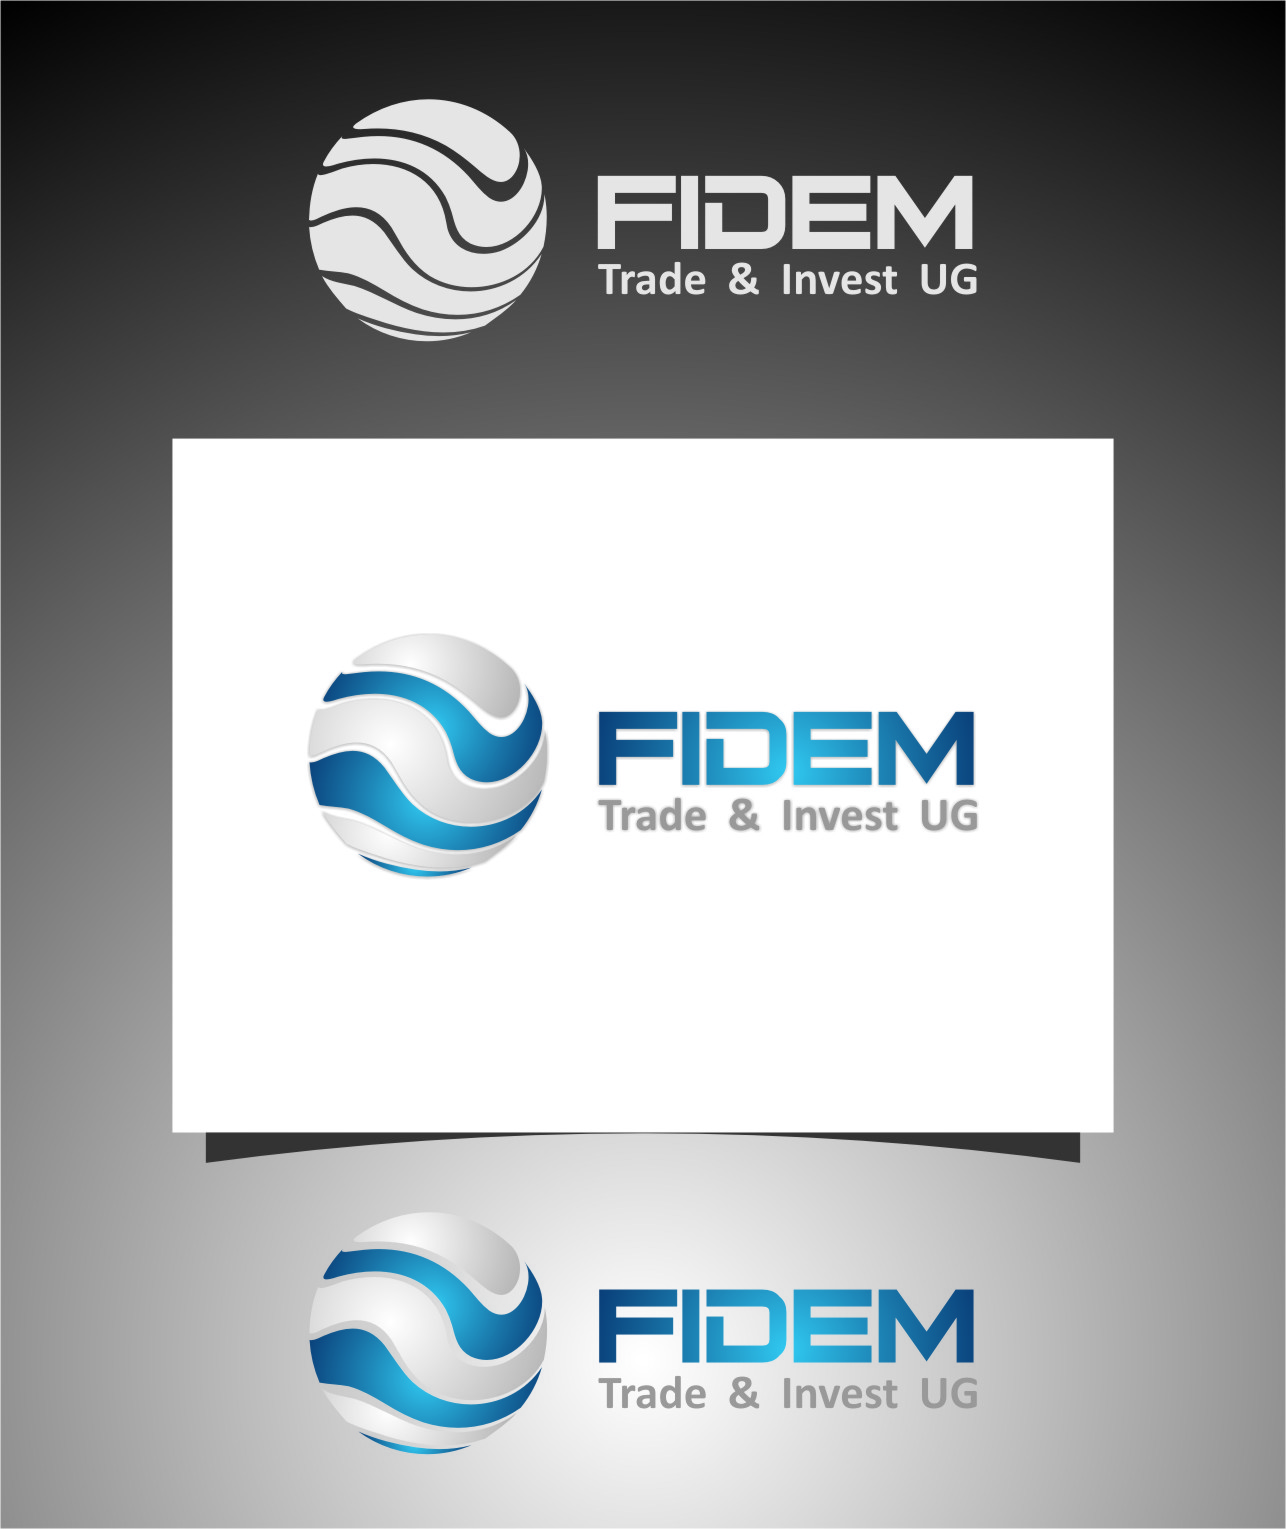 Logo Design by Ngepet_art - Entry No. 158 in the Logo Design Contest Professional Logo Design for FIDEM Trade & Invest UG.